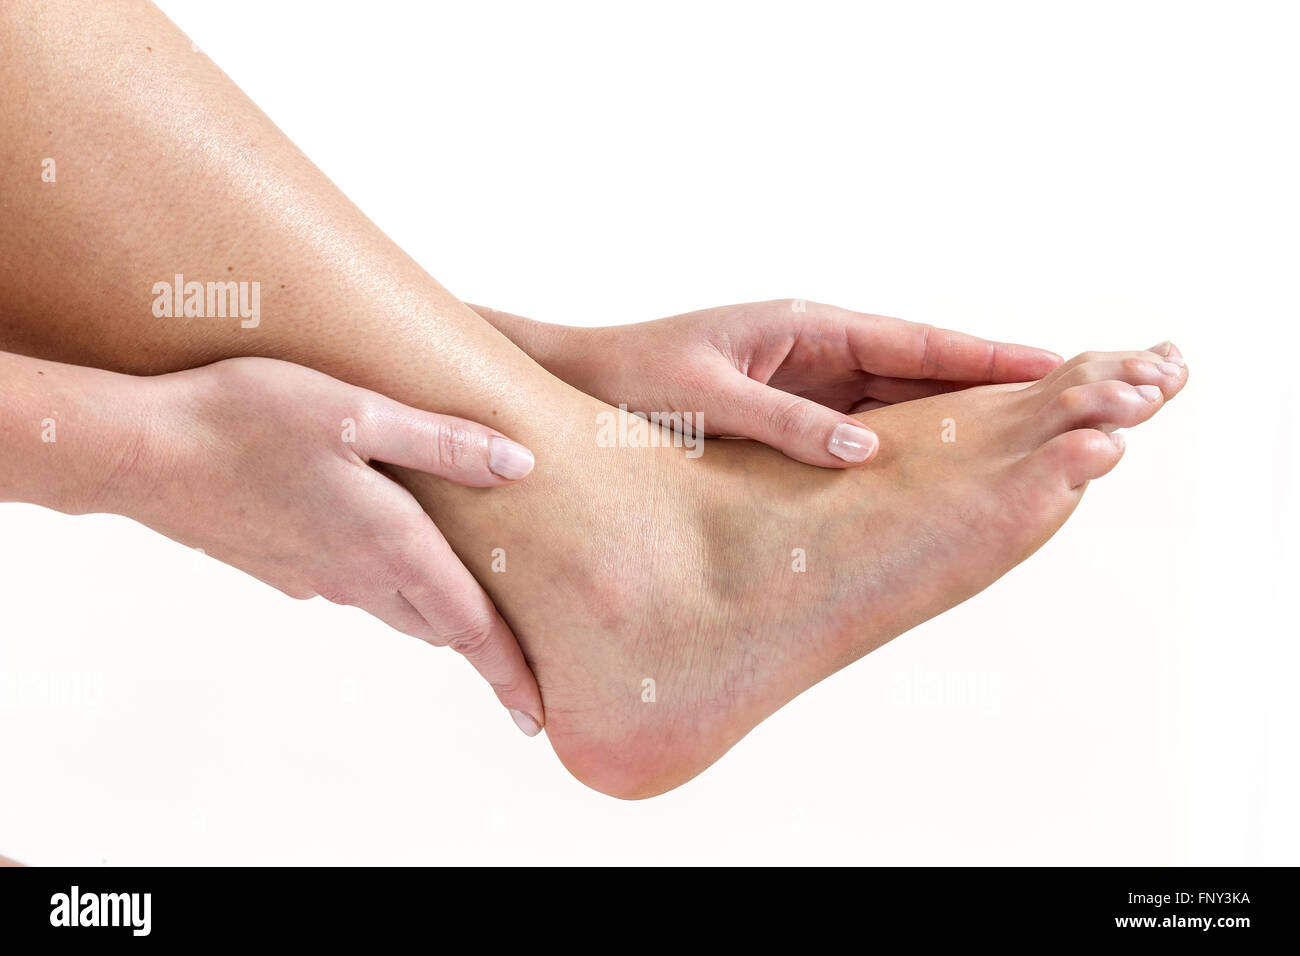 Human Ankle Pain With An Anatomy Injury Stock Photo 99555214 Alamy